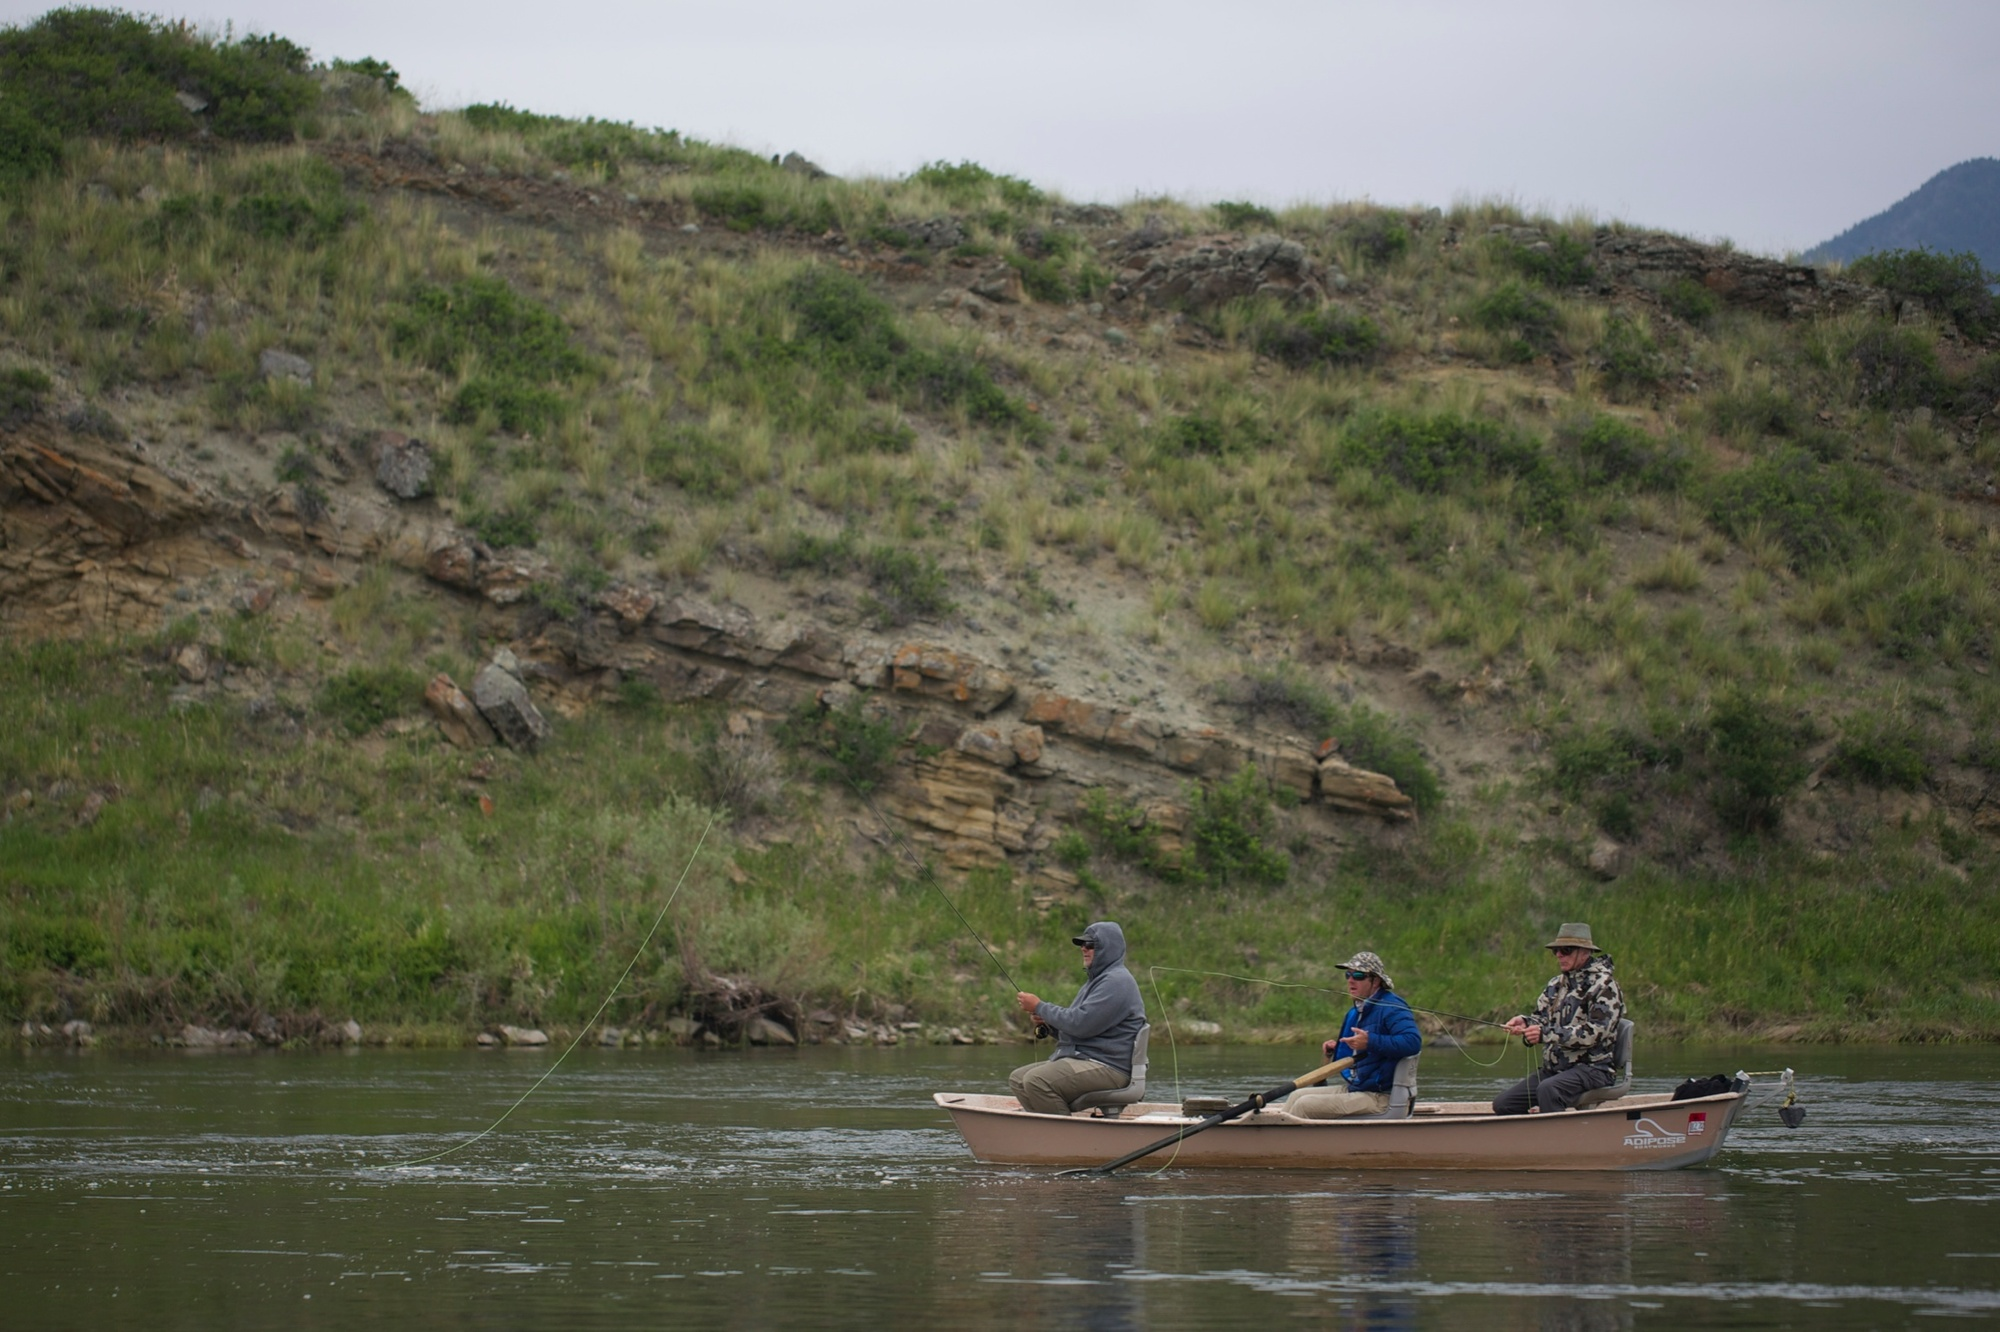 Fly fishing guides in Montana